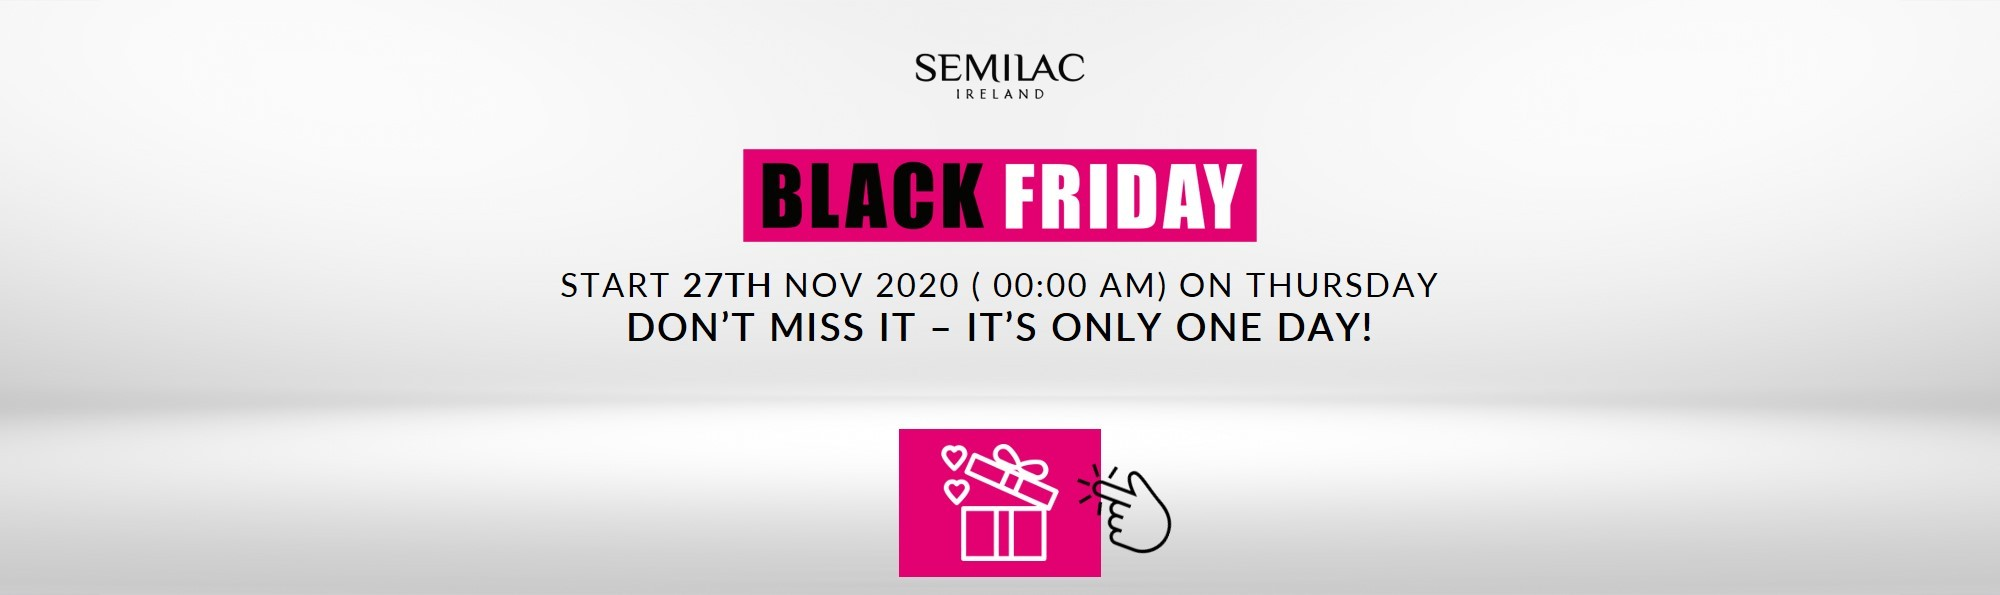 Semilac Ireland Black Friday offer